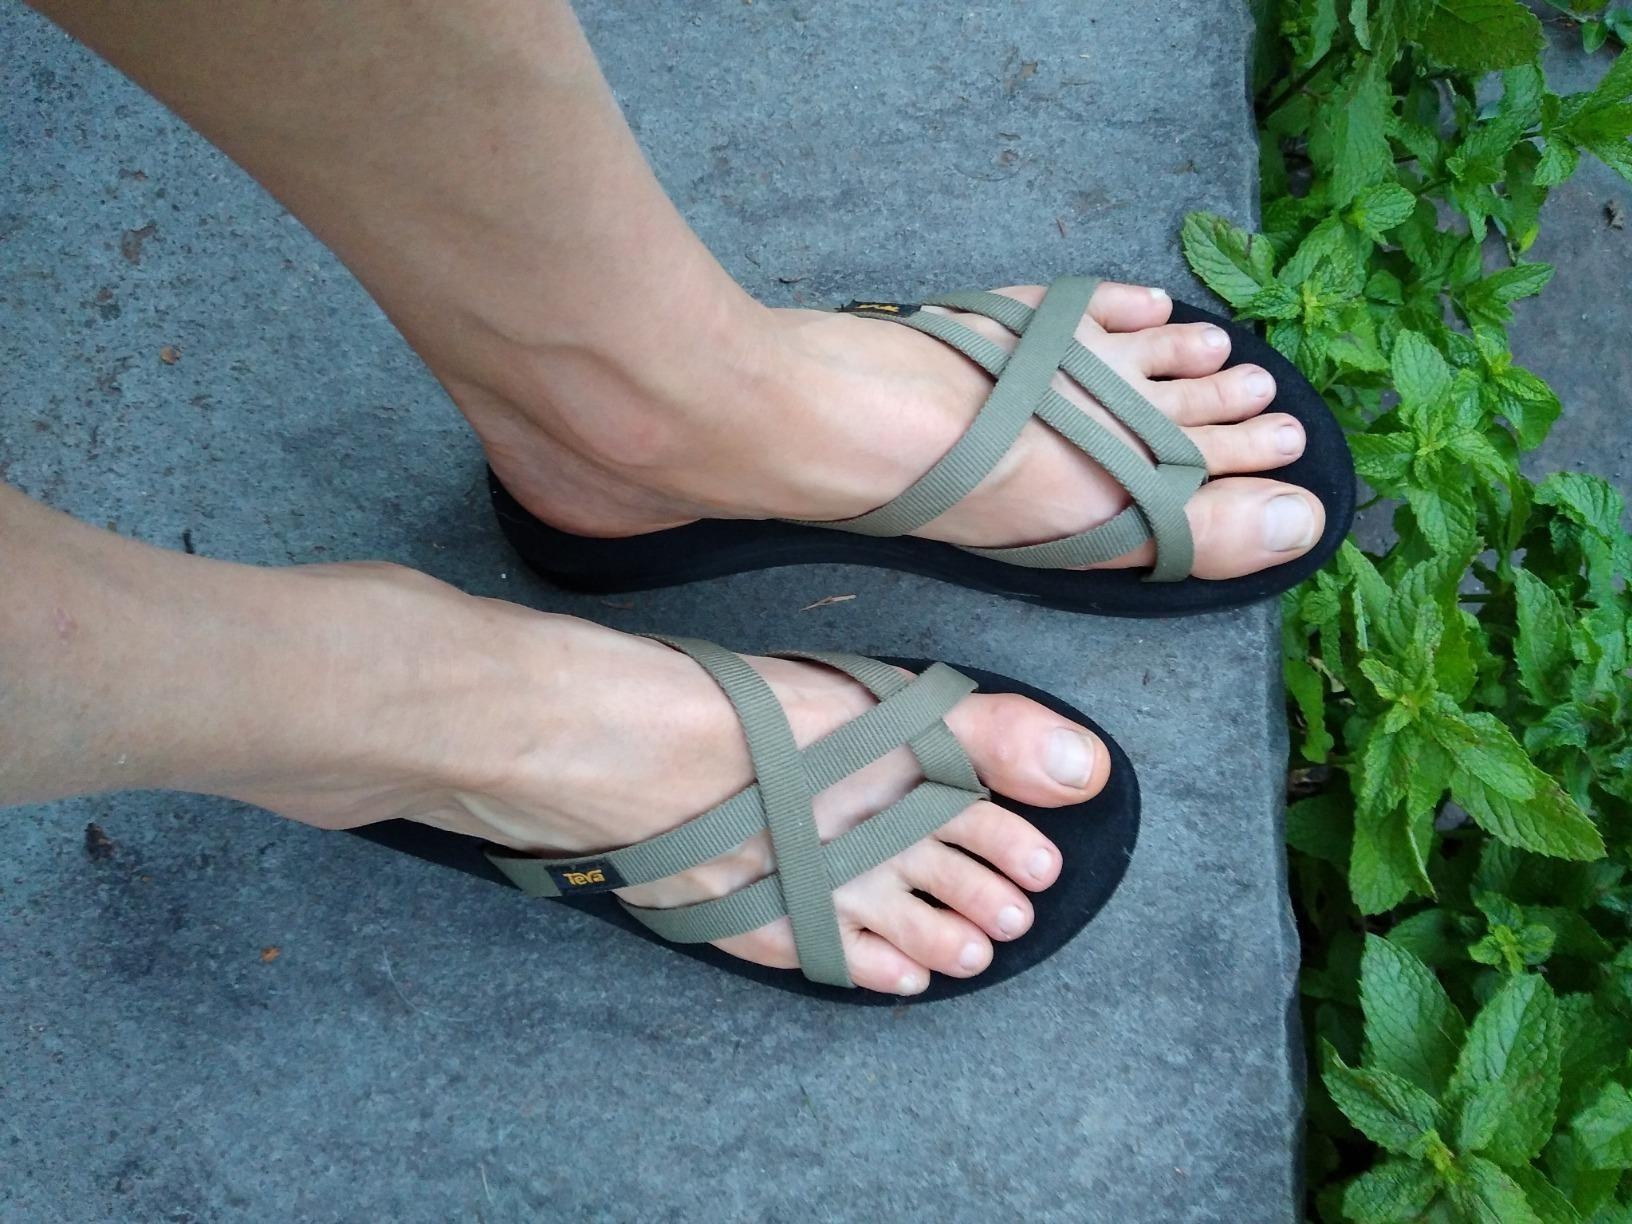 reviewer wearing the flipflops, which have a black footbed and sage green crisscrossing straps